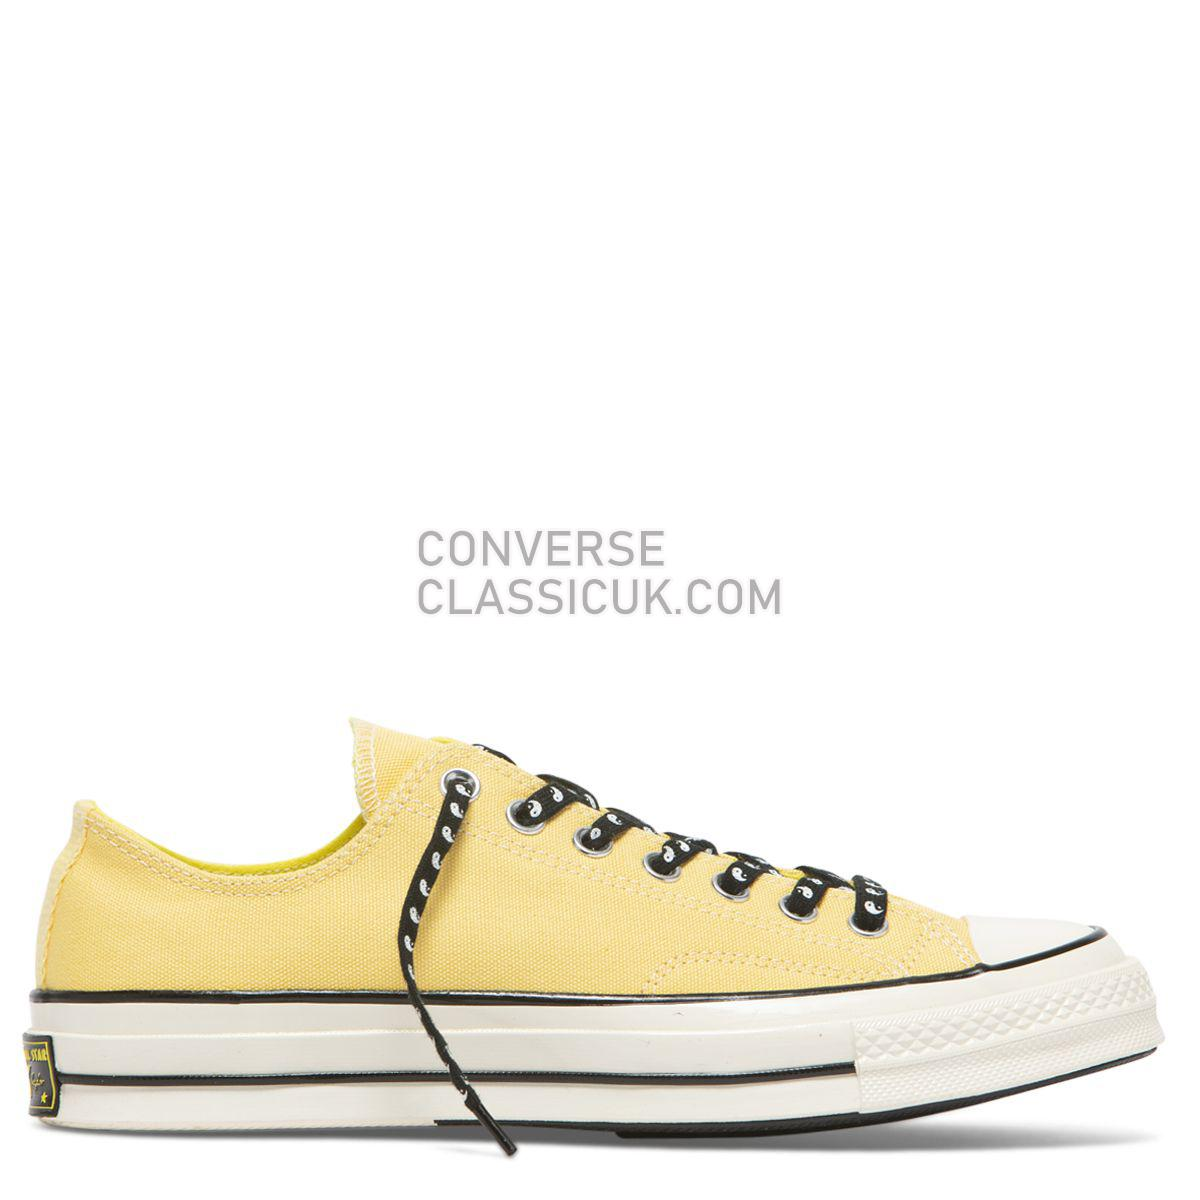 Converse Chuck Taylor All Star 70 Psy-Kicks Low Top Butter Yellow Mens Womens Unisex 164214 Butter Yellow/Fresh Yellow/Egret Shoes